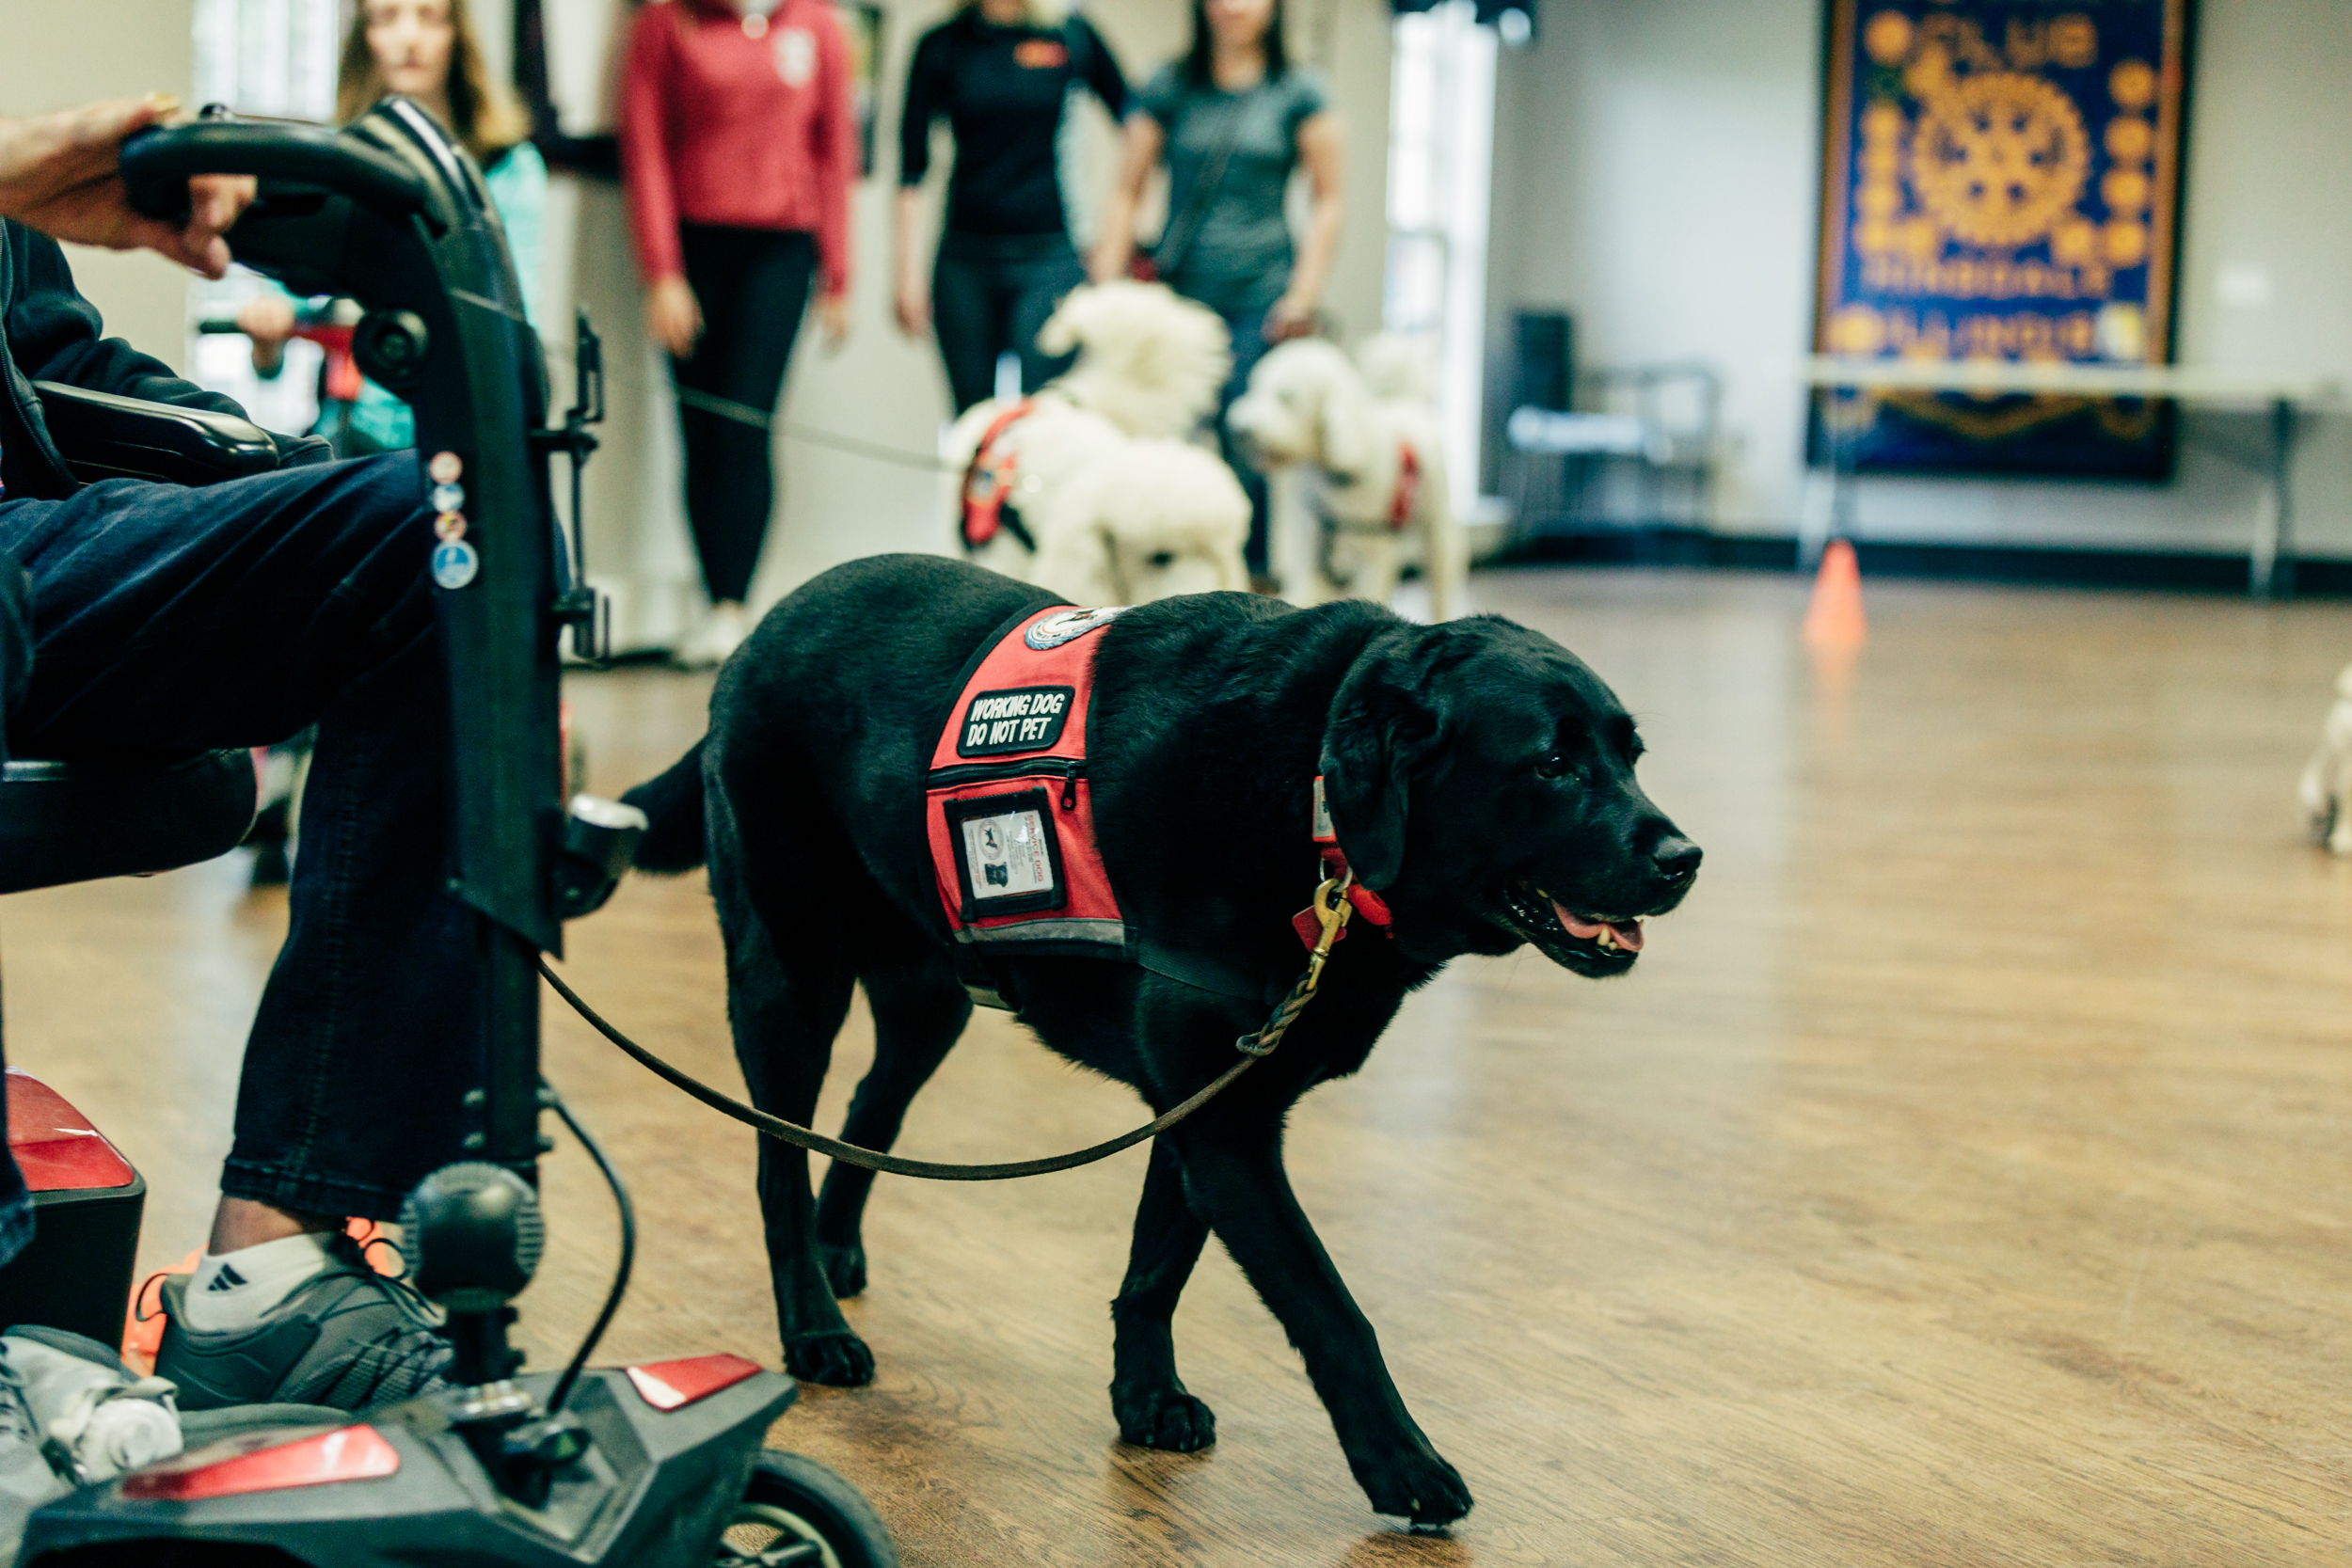 service dogs - Want to learn more about the type of service dogs we work with, as well as service dog etiquette?